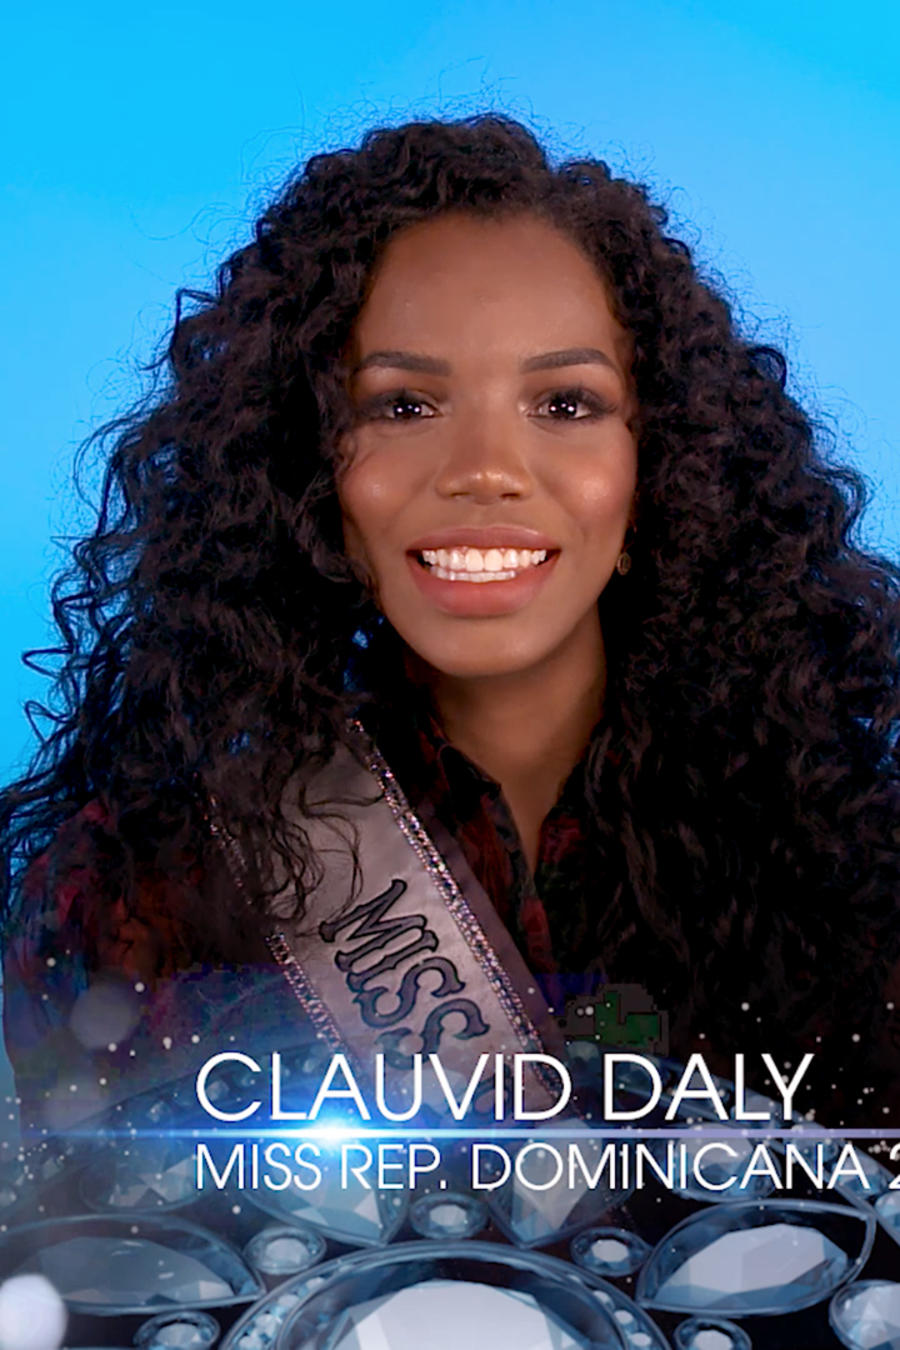 Clauvid Dály, Miss República Dominicana 2019, Miss Universo 2019